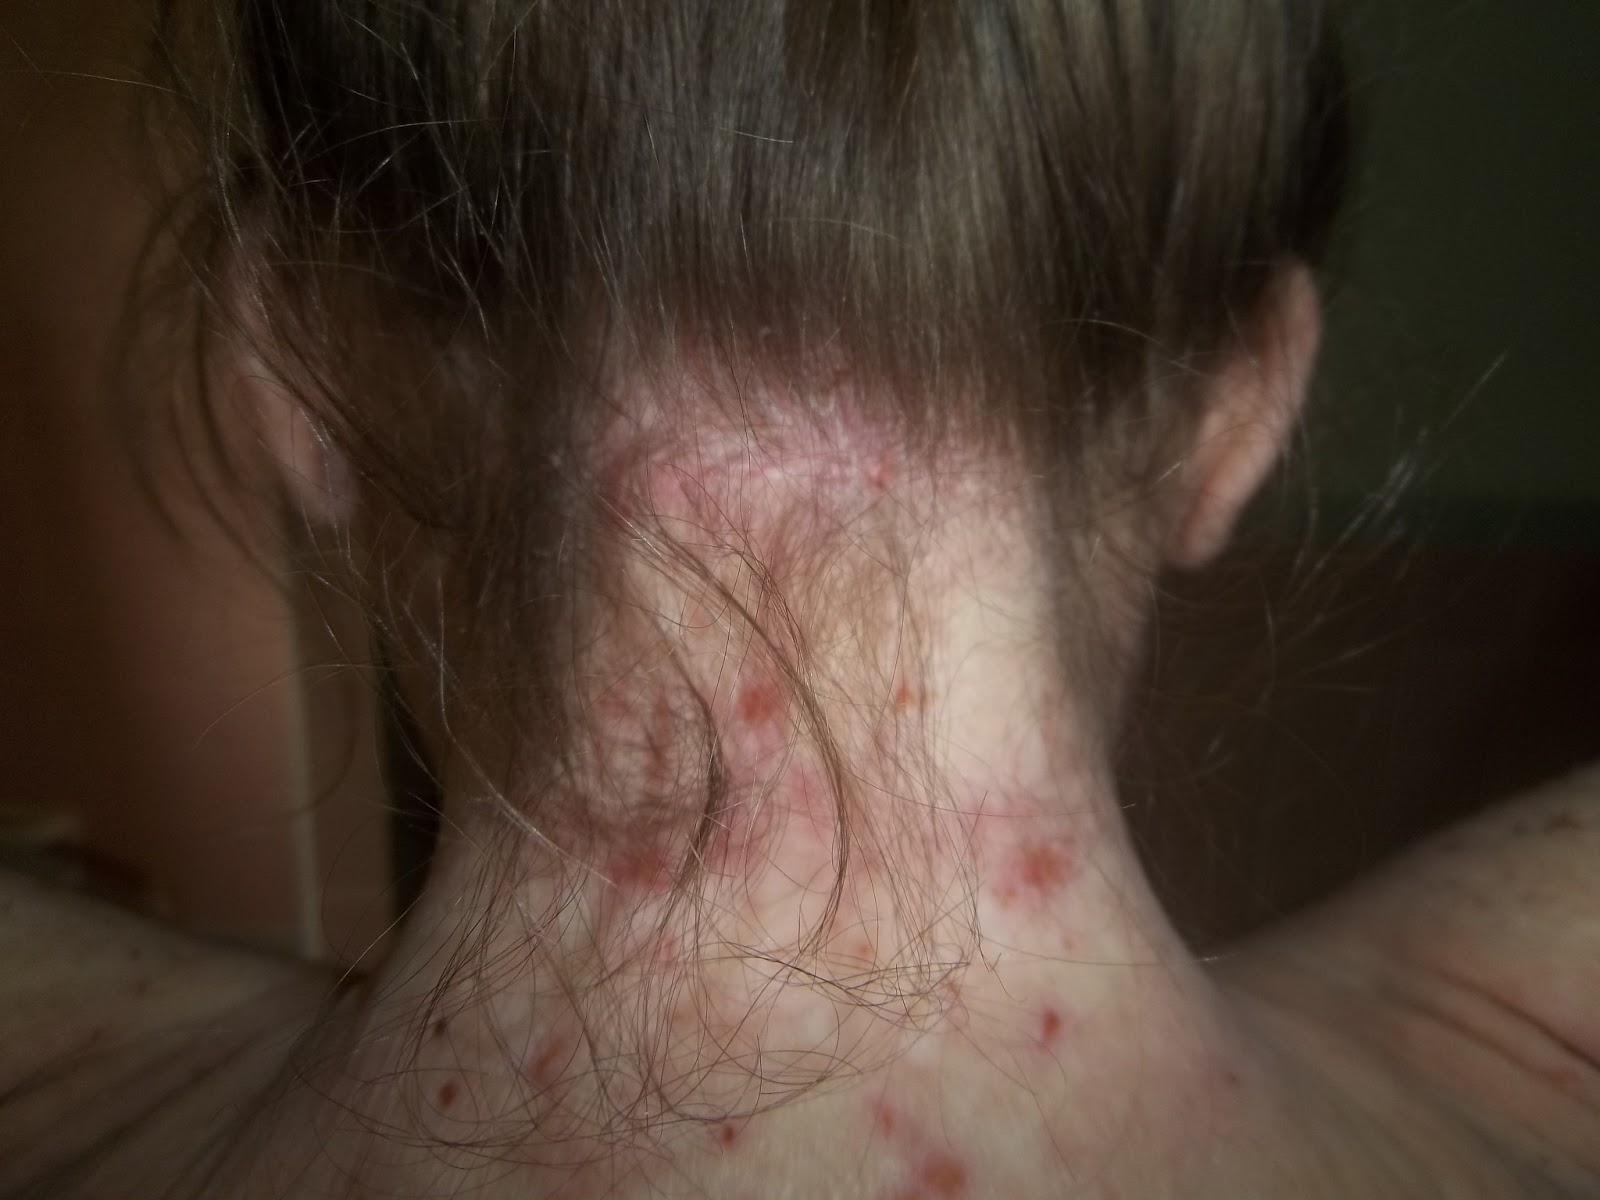 Answers to Bump on back of neck near hairline - DoctorBase